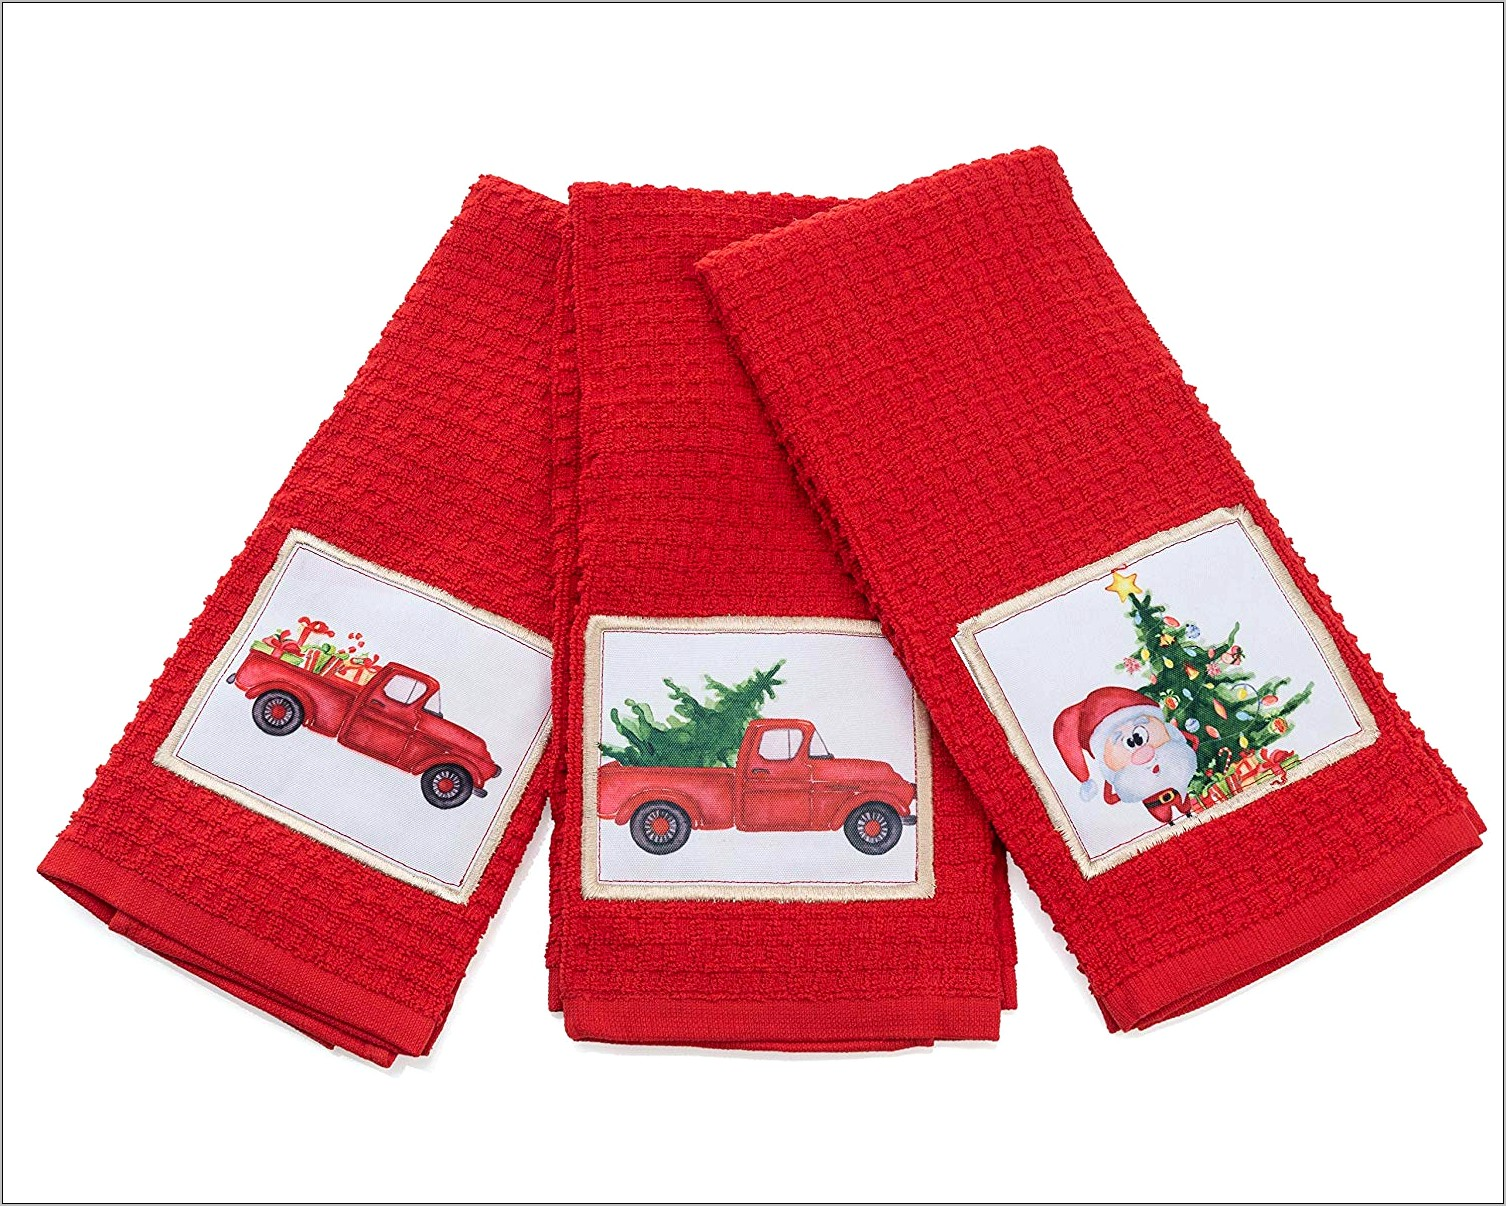 Decorative Christmas Kitchen Towels